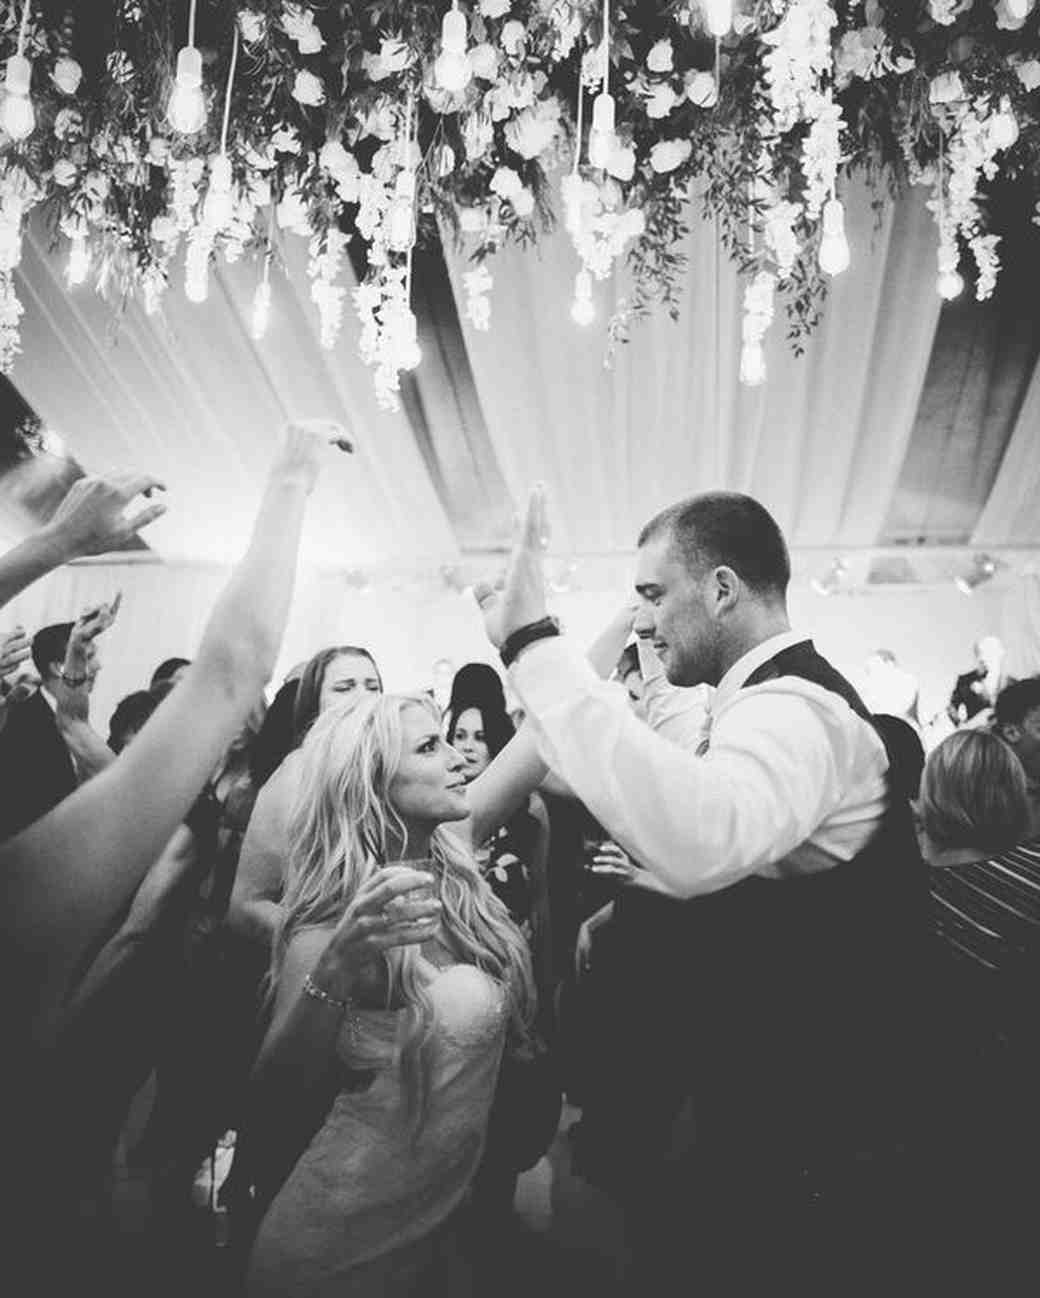 julie johnston zach ertz dancing wedding